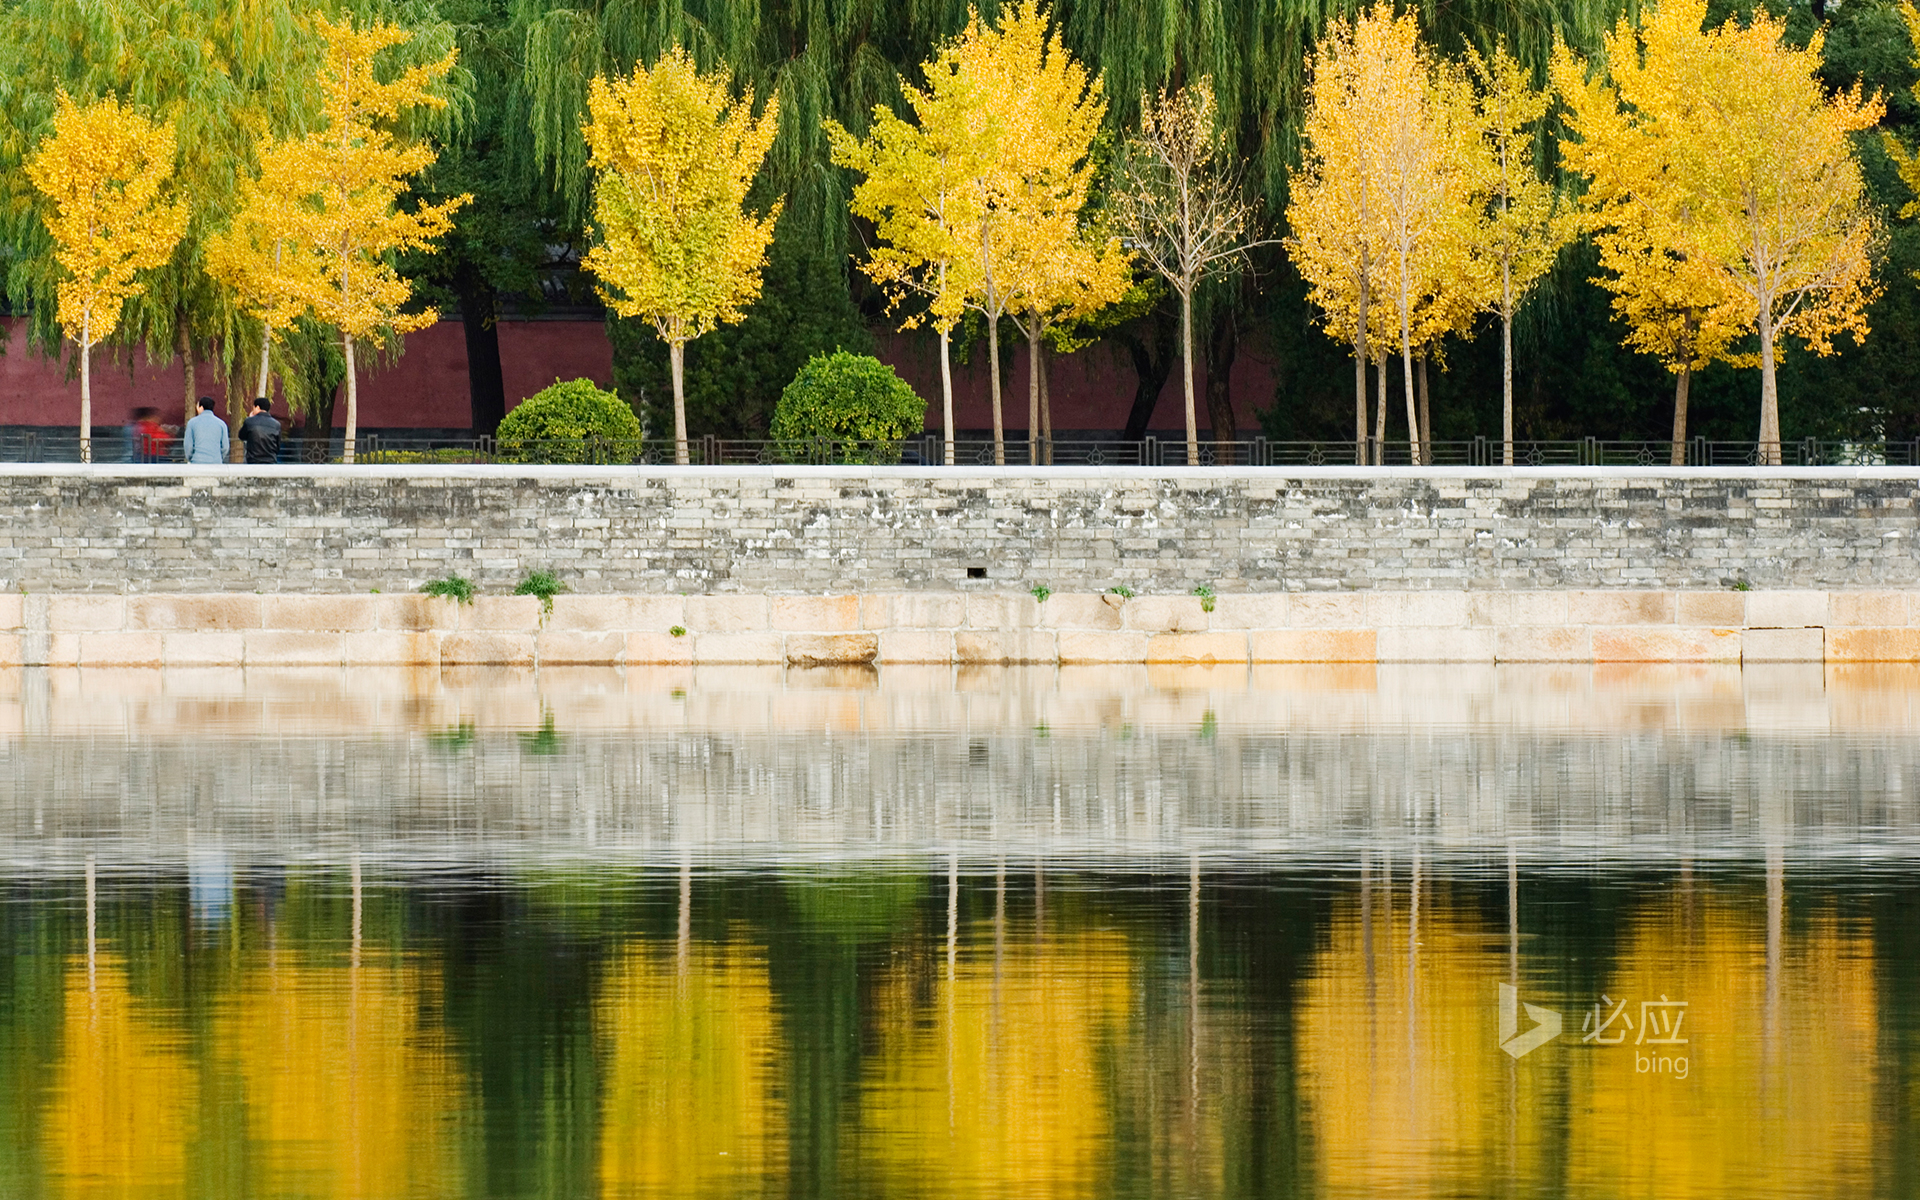 China, Beijing, autumn reflected in the moat of the Forbidden City